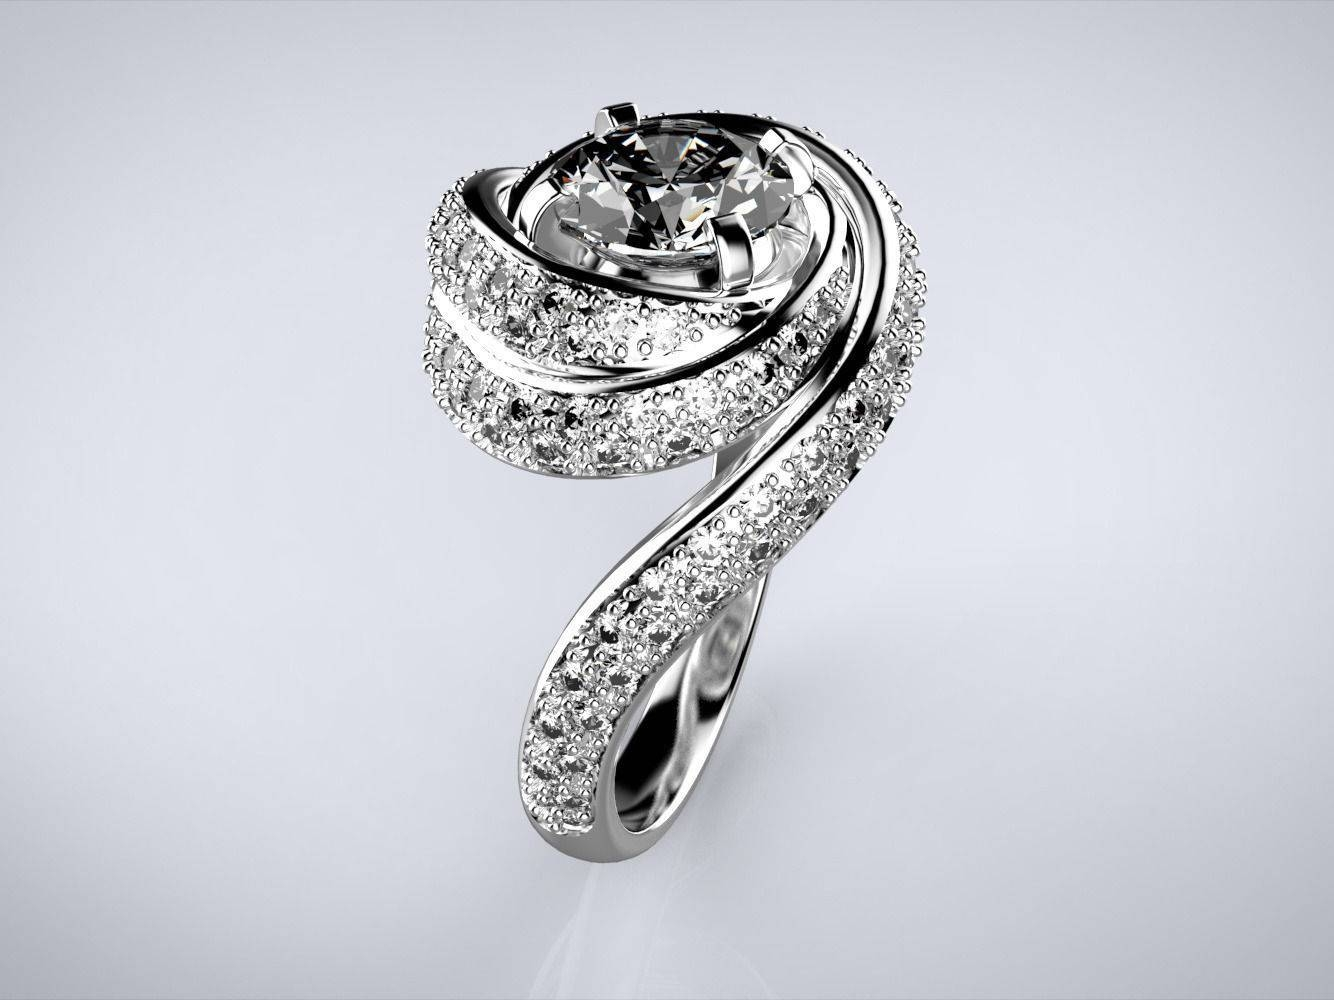 3d Printable Model Engagement Swirl Ring Spiral | Cgtrader Within Spiral Engagement Rings (View 15 of 15)